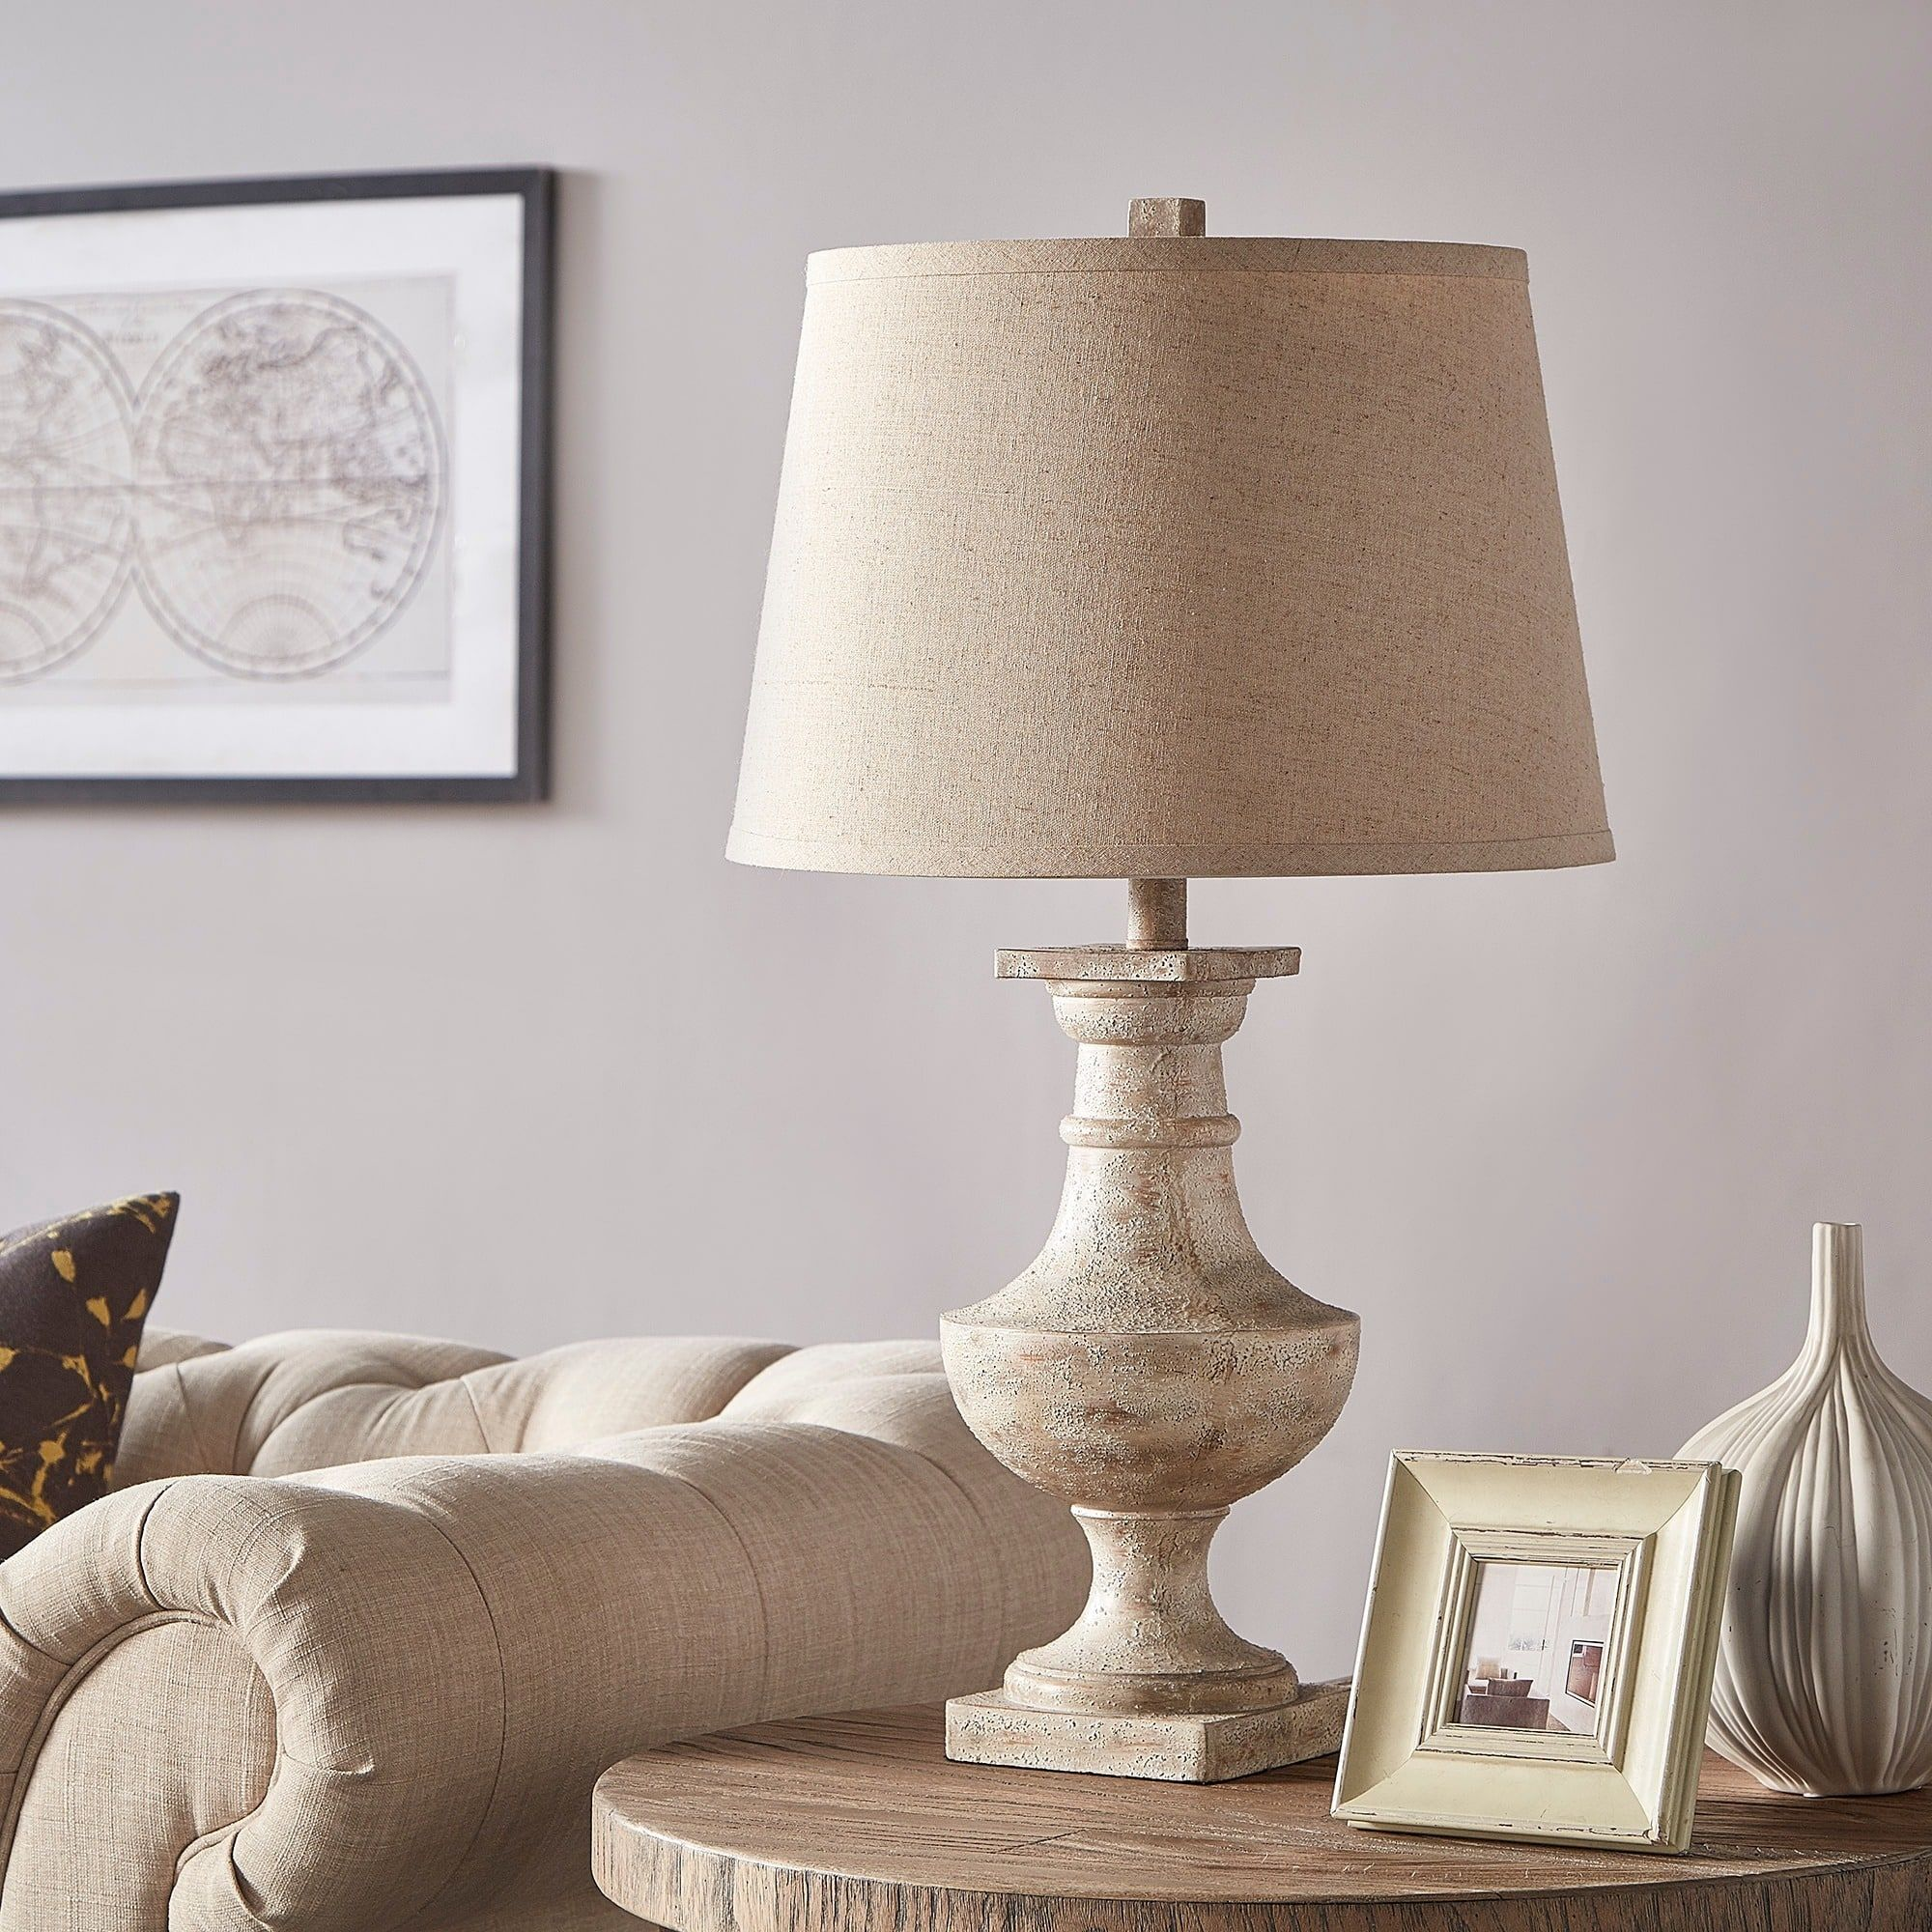 Buy Table Lamps Online at Overstock Our Best Lighting